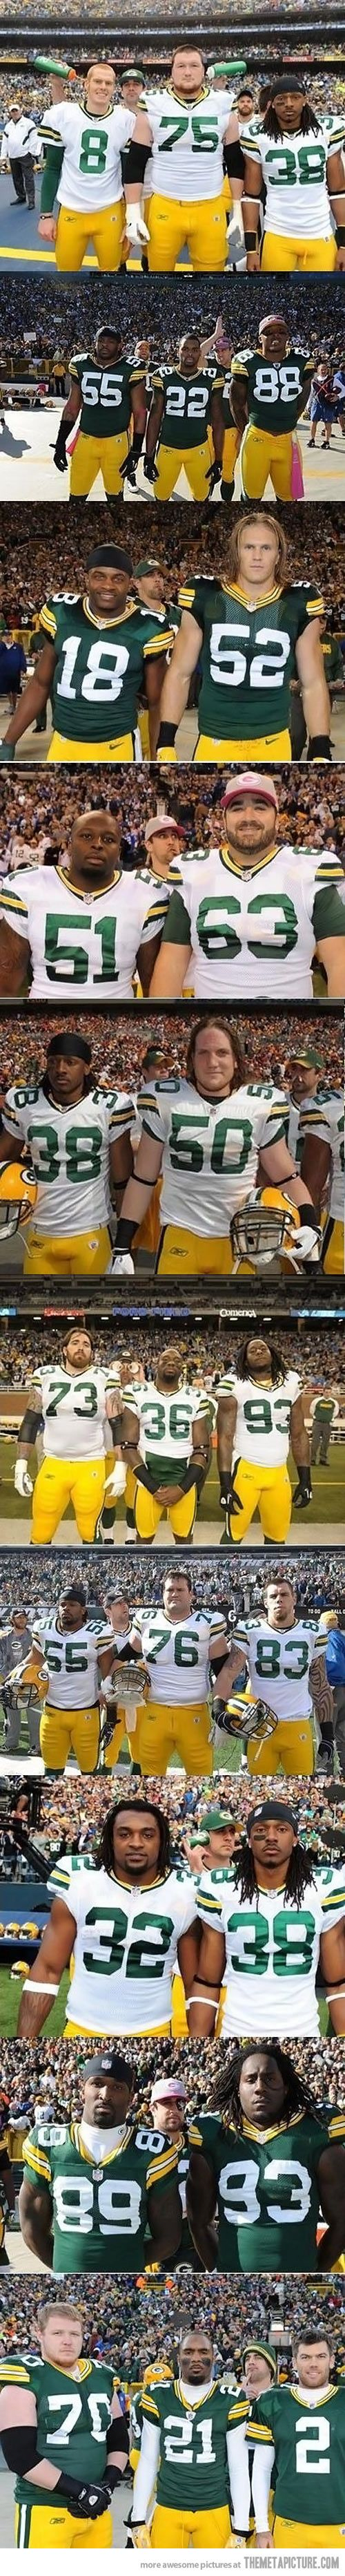 Picture of the Day ........Aaron Rodgers, master photobomber.